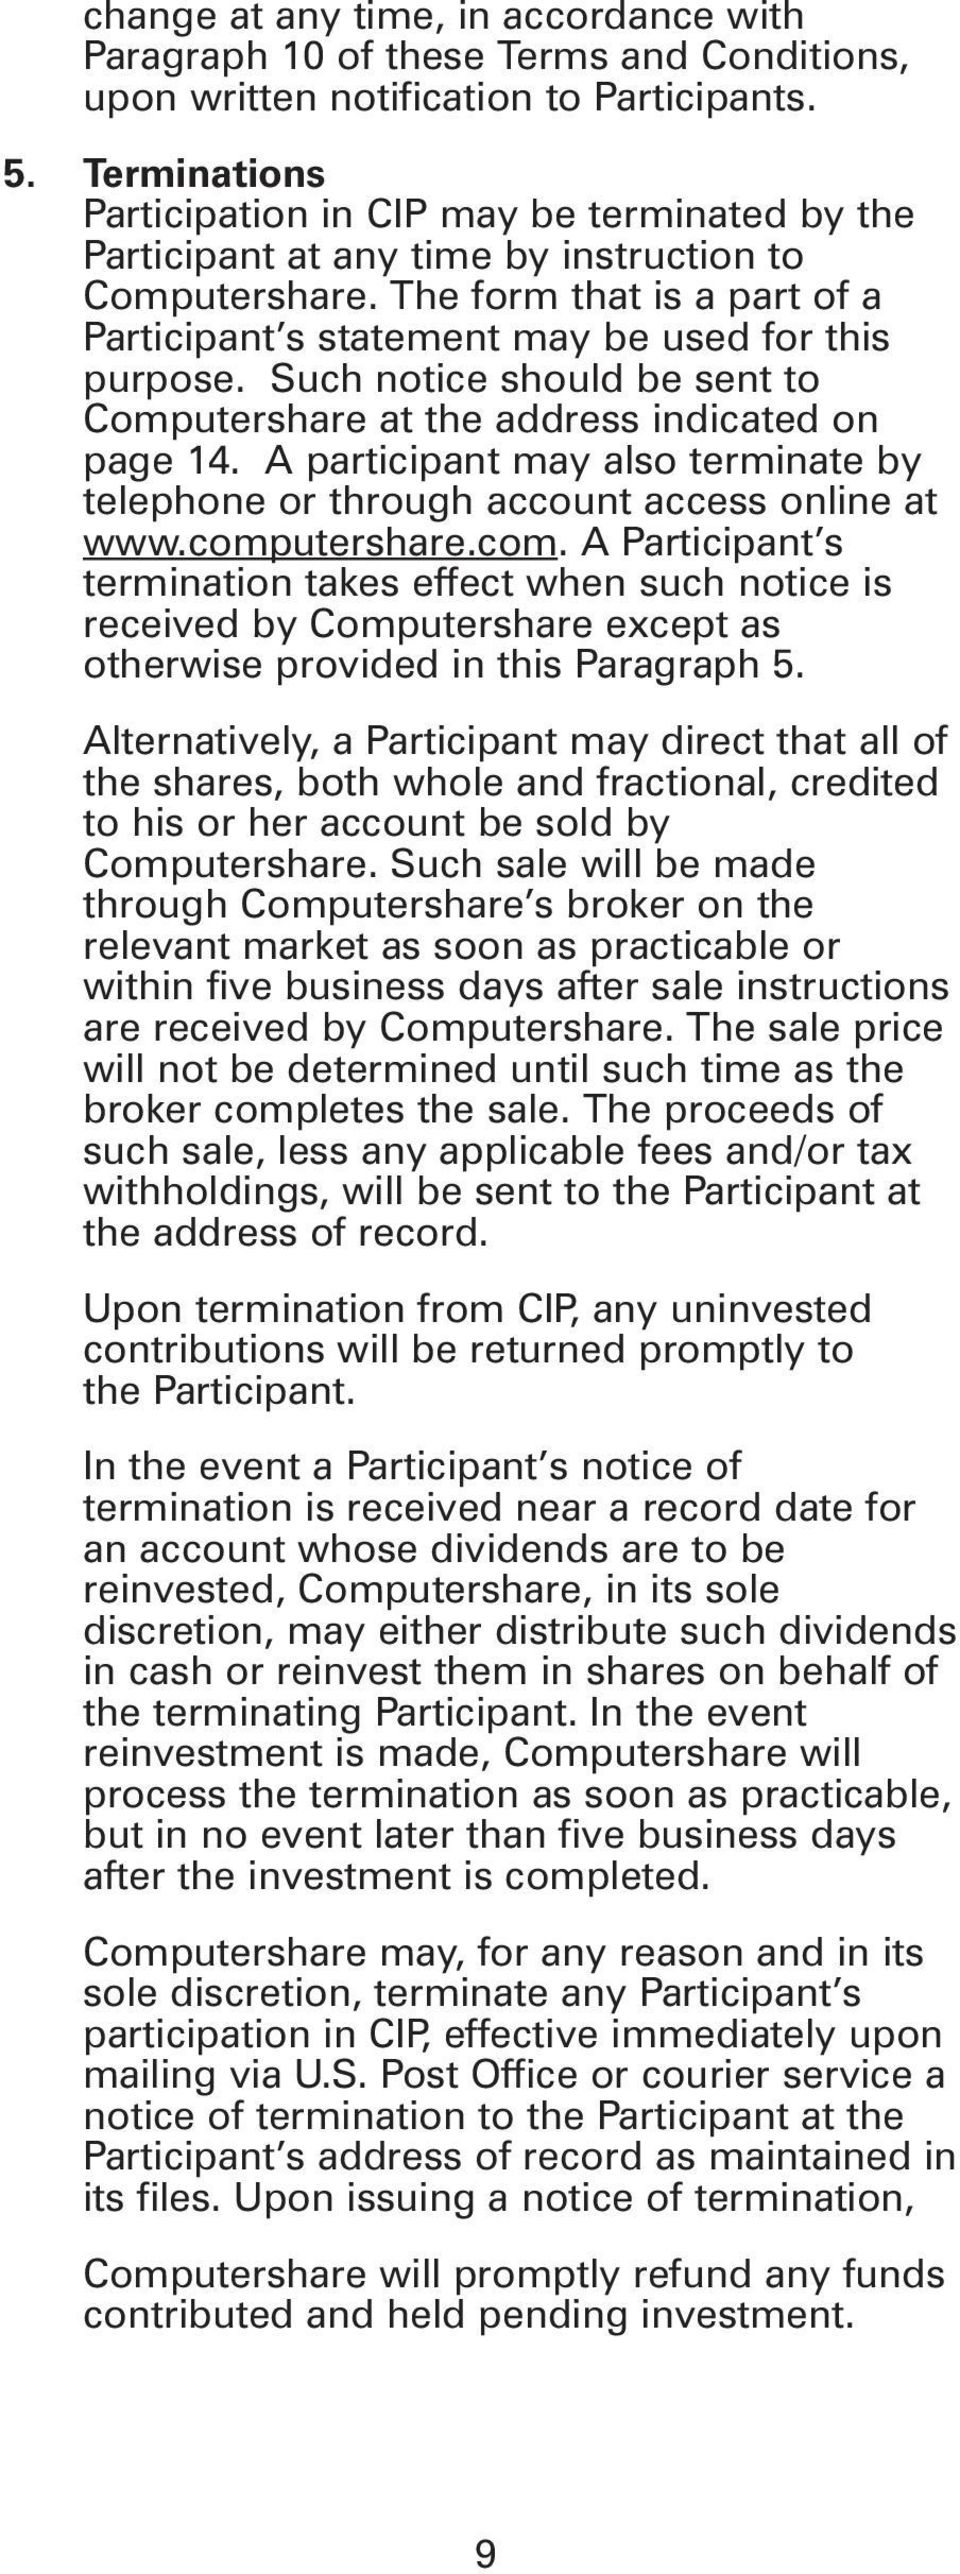 Such notice should be sent to Computershare at the address indicated on page 14. A participant may also terminate by telephone or through account access online at www.comp